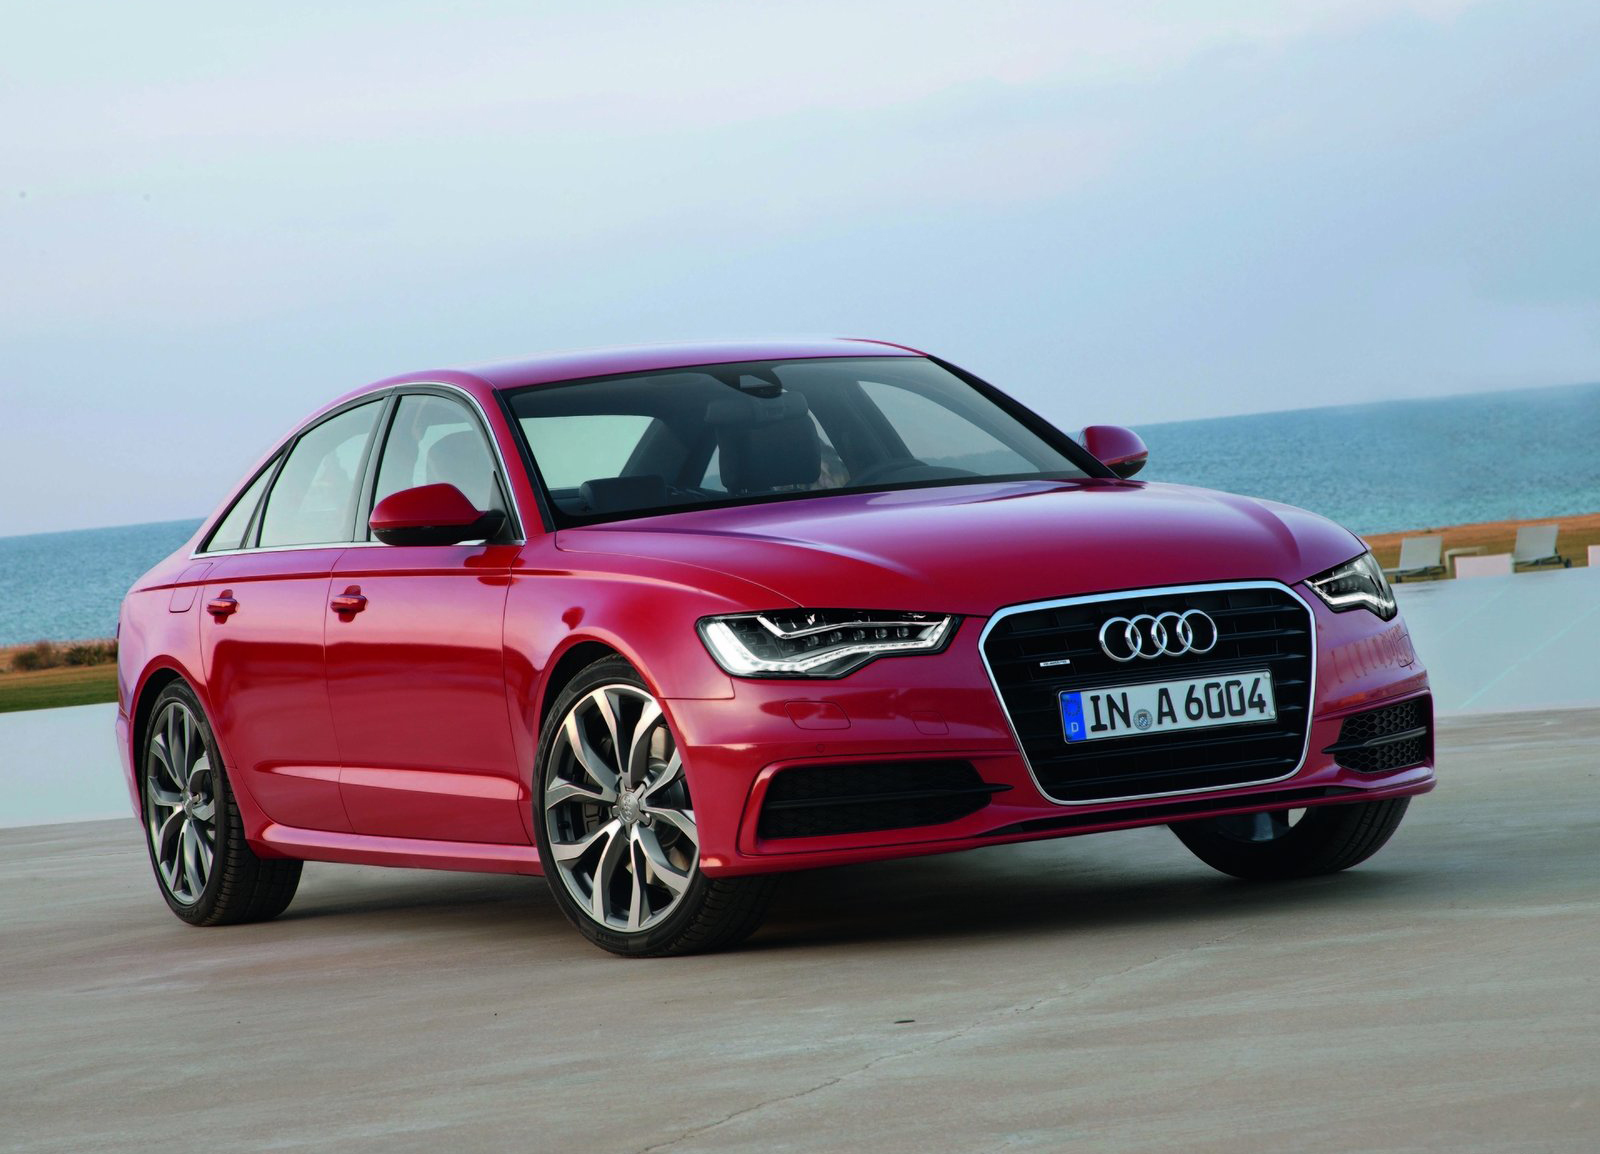 2012 audi a6 review and specification newsautomagz. Black Bedroom Furniture Sets. Home Design Ideas